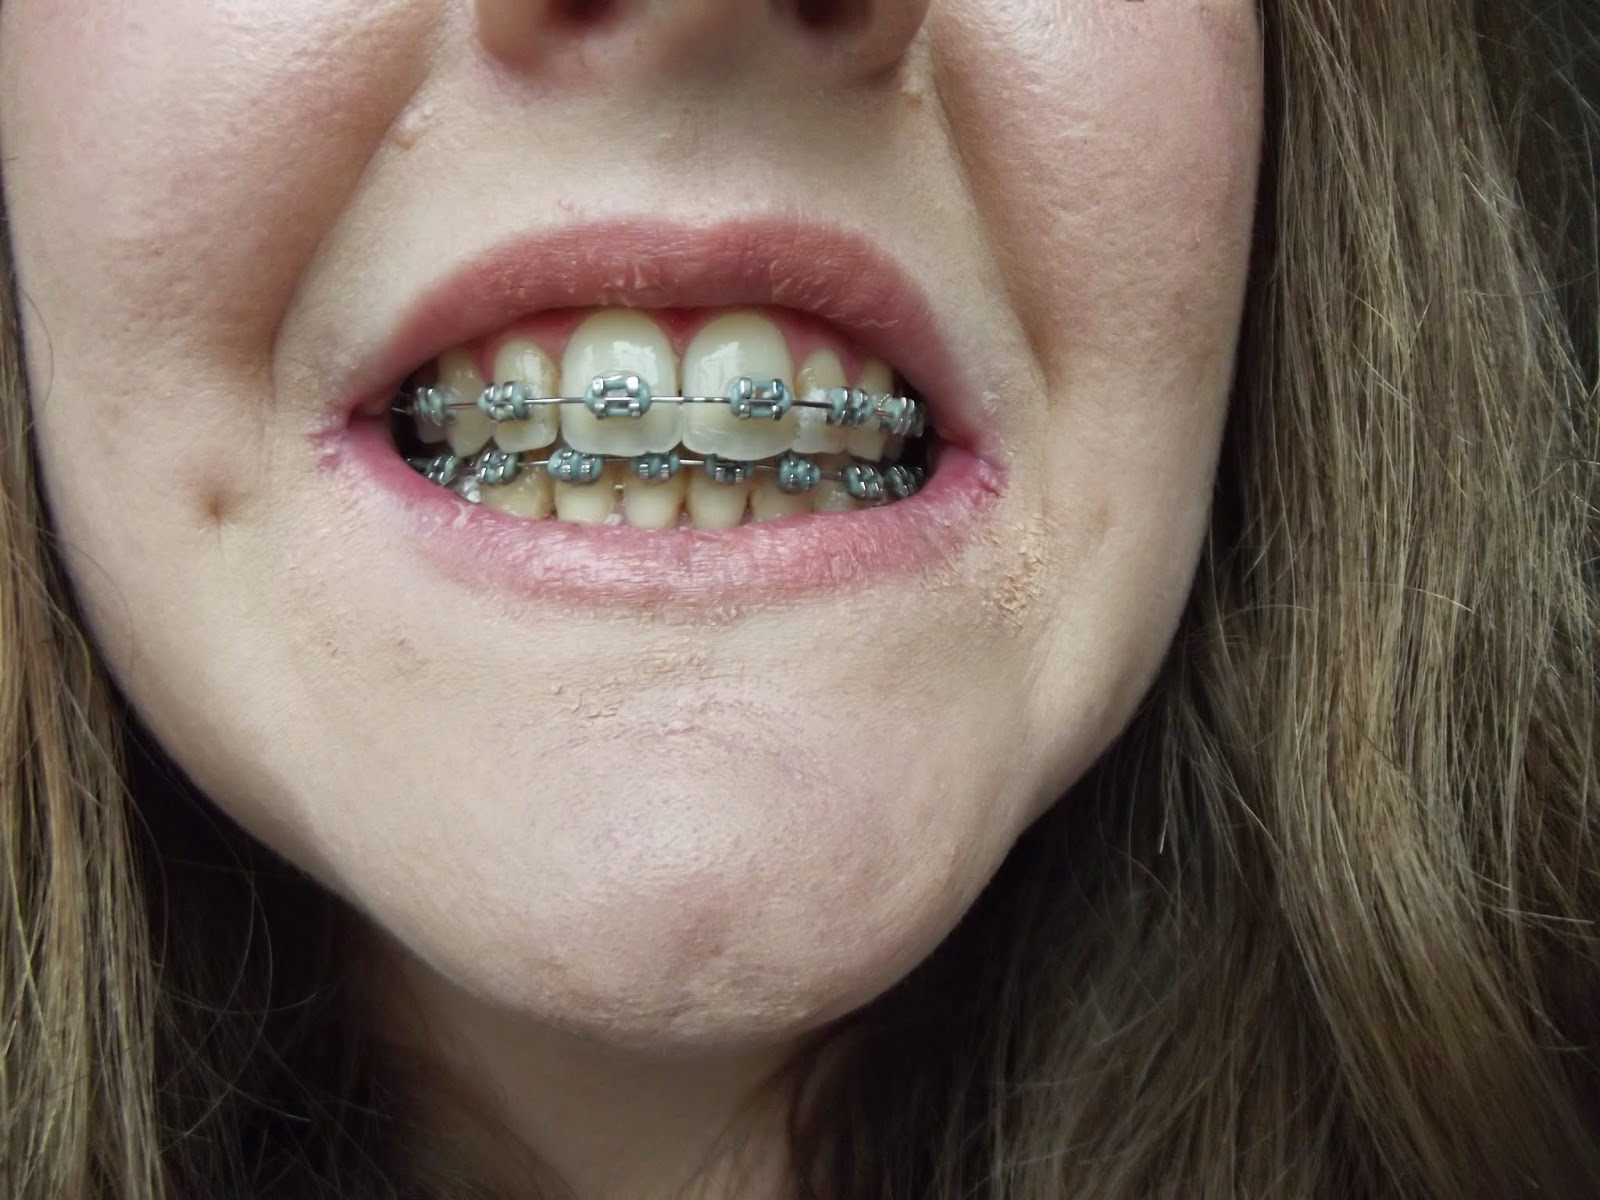 a photo of teeth with braces during orthodontic treatment